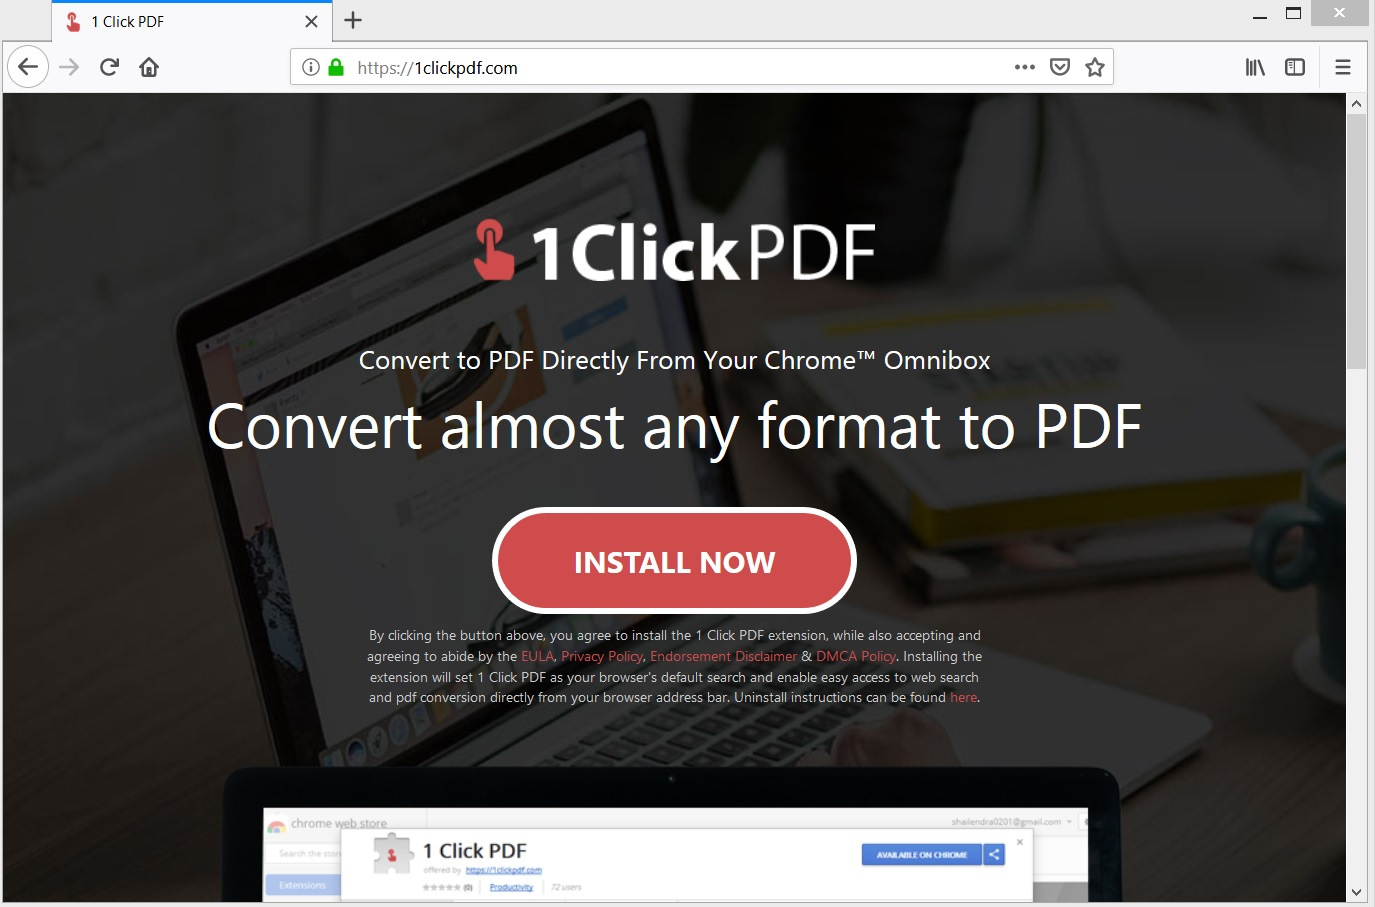 remove-1clickpdf-undesired-app-sensorstechforum-mac-guide